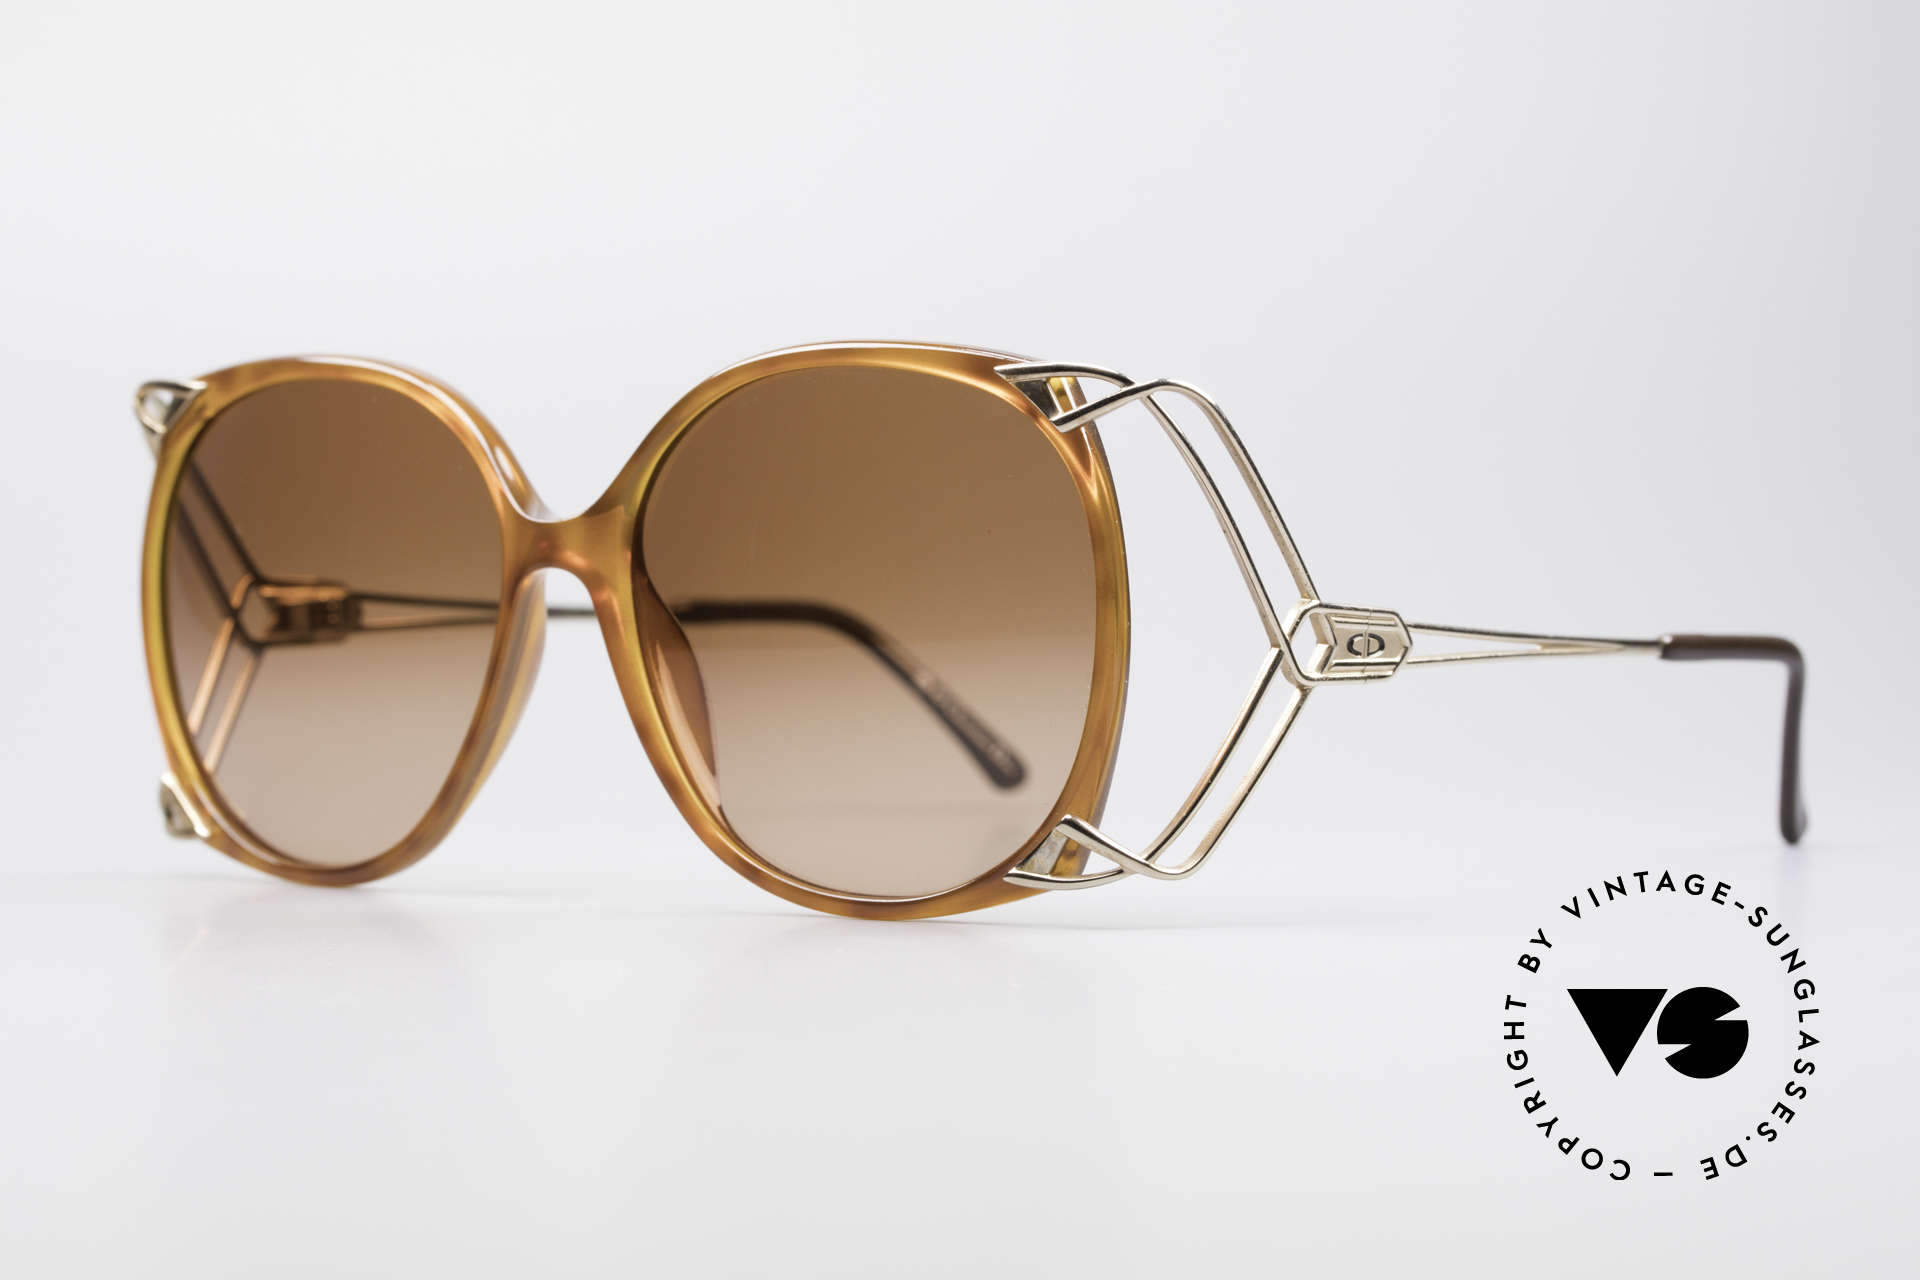 Christian Dior 2616 80's Ladies Sunglasses XXL, pure designer sunglasses - just CHIC and FANCY!, Made for Women